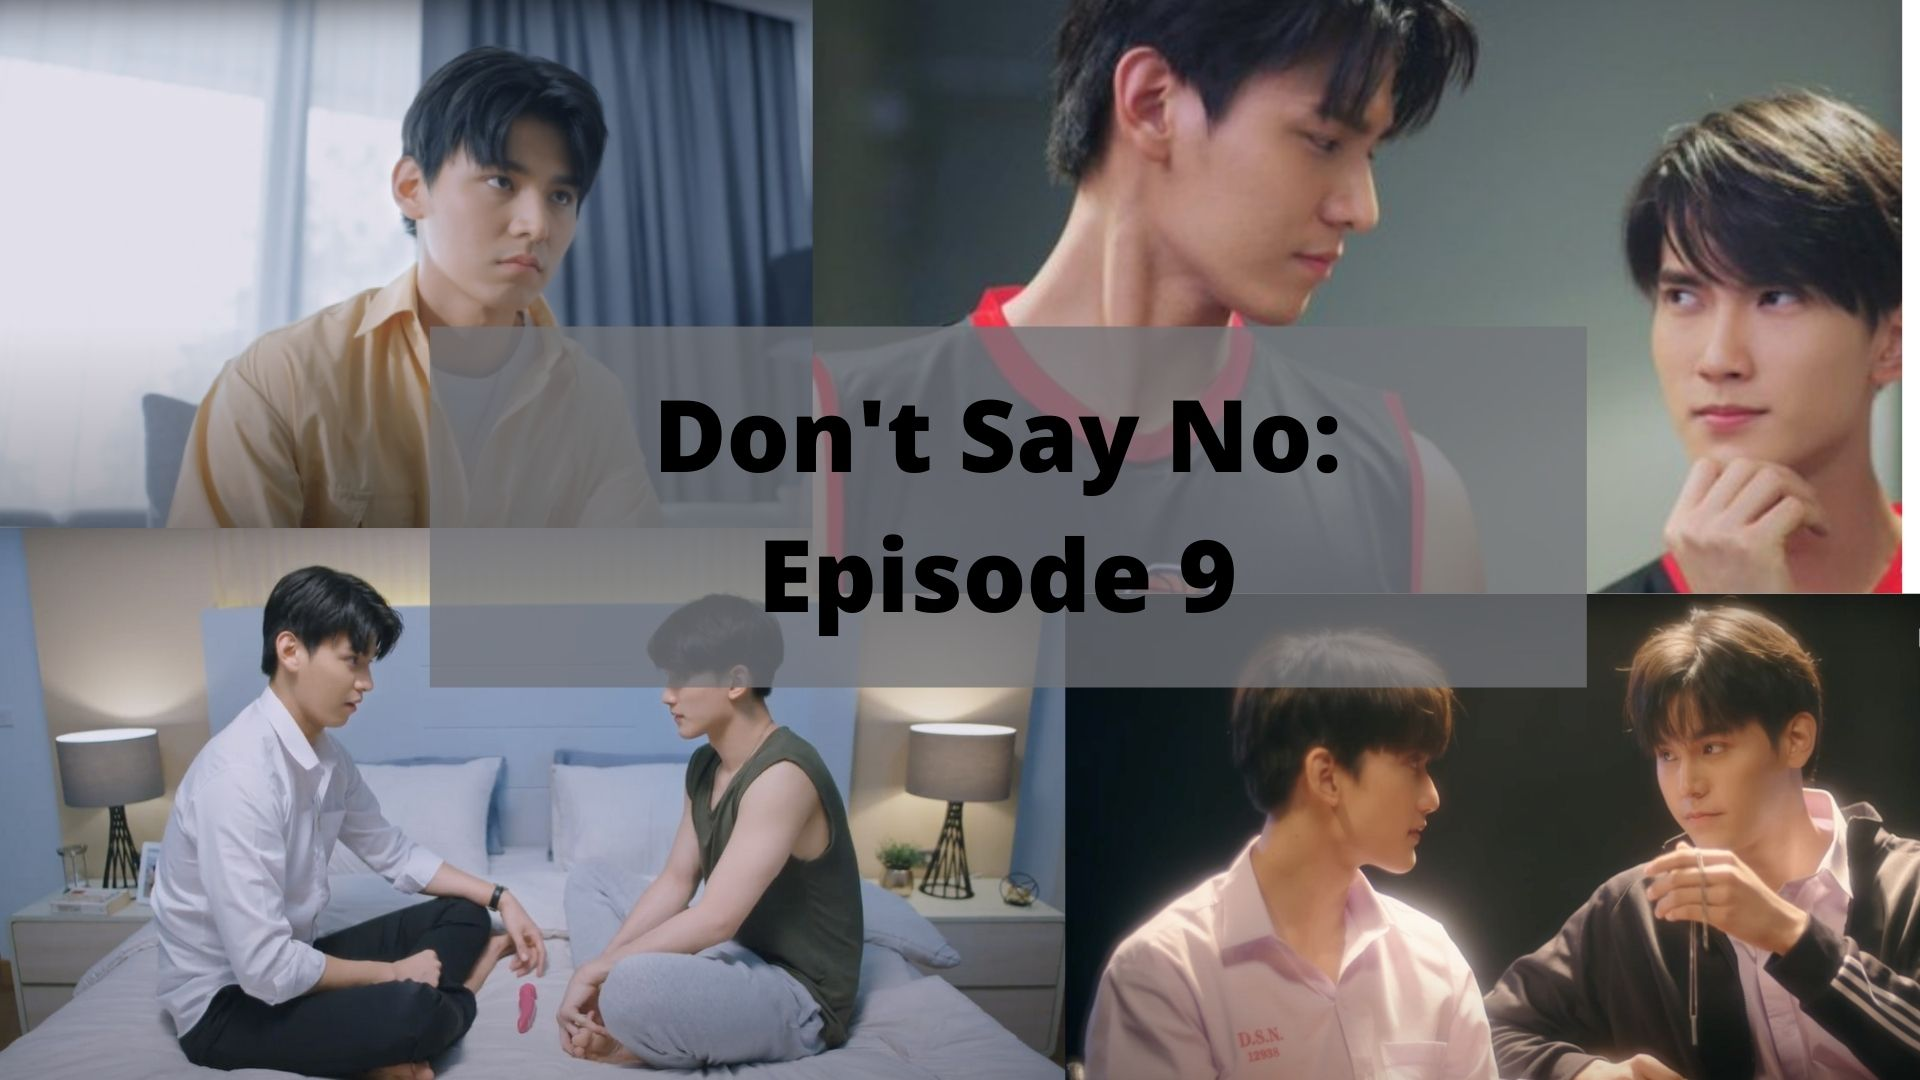 Don't Say No Episode 9: Everything You Need to Know!